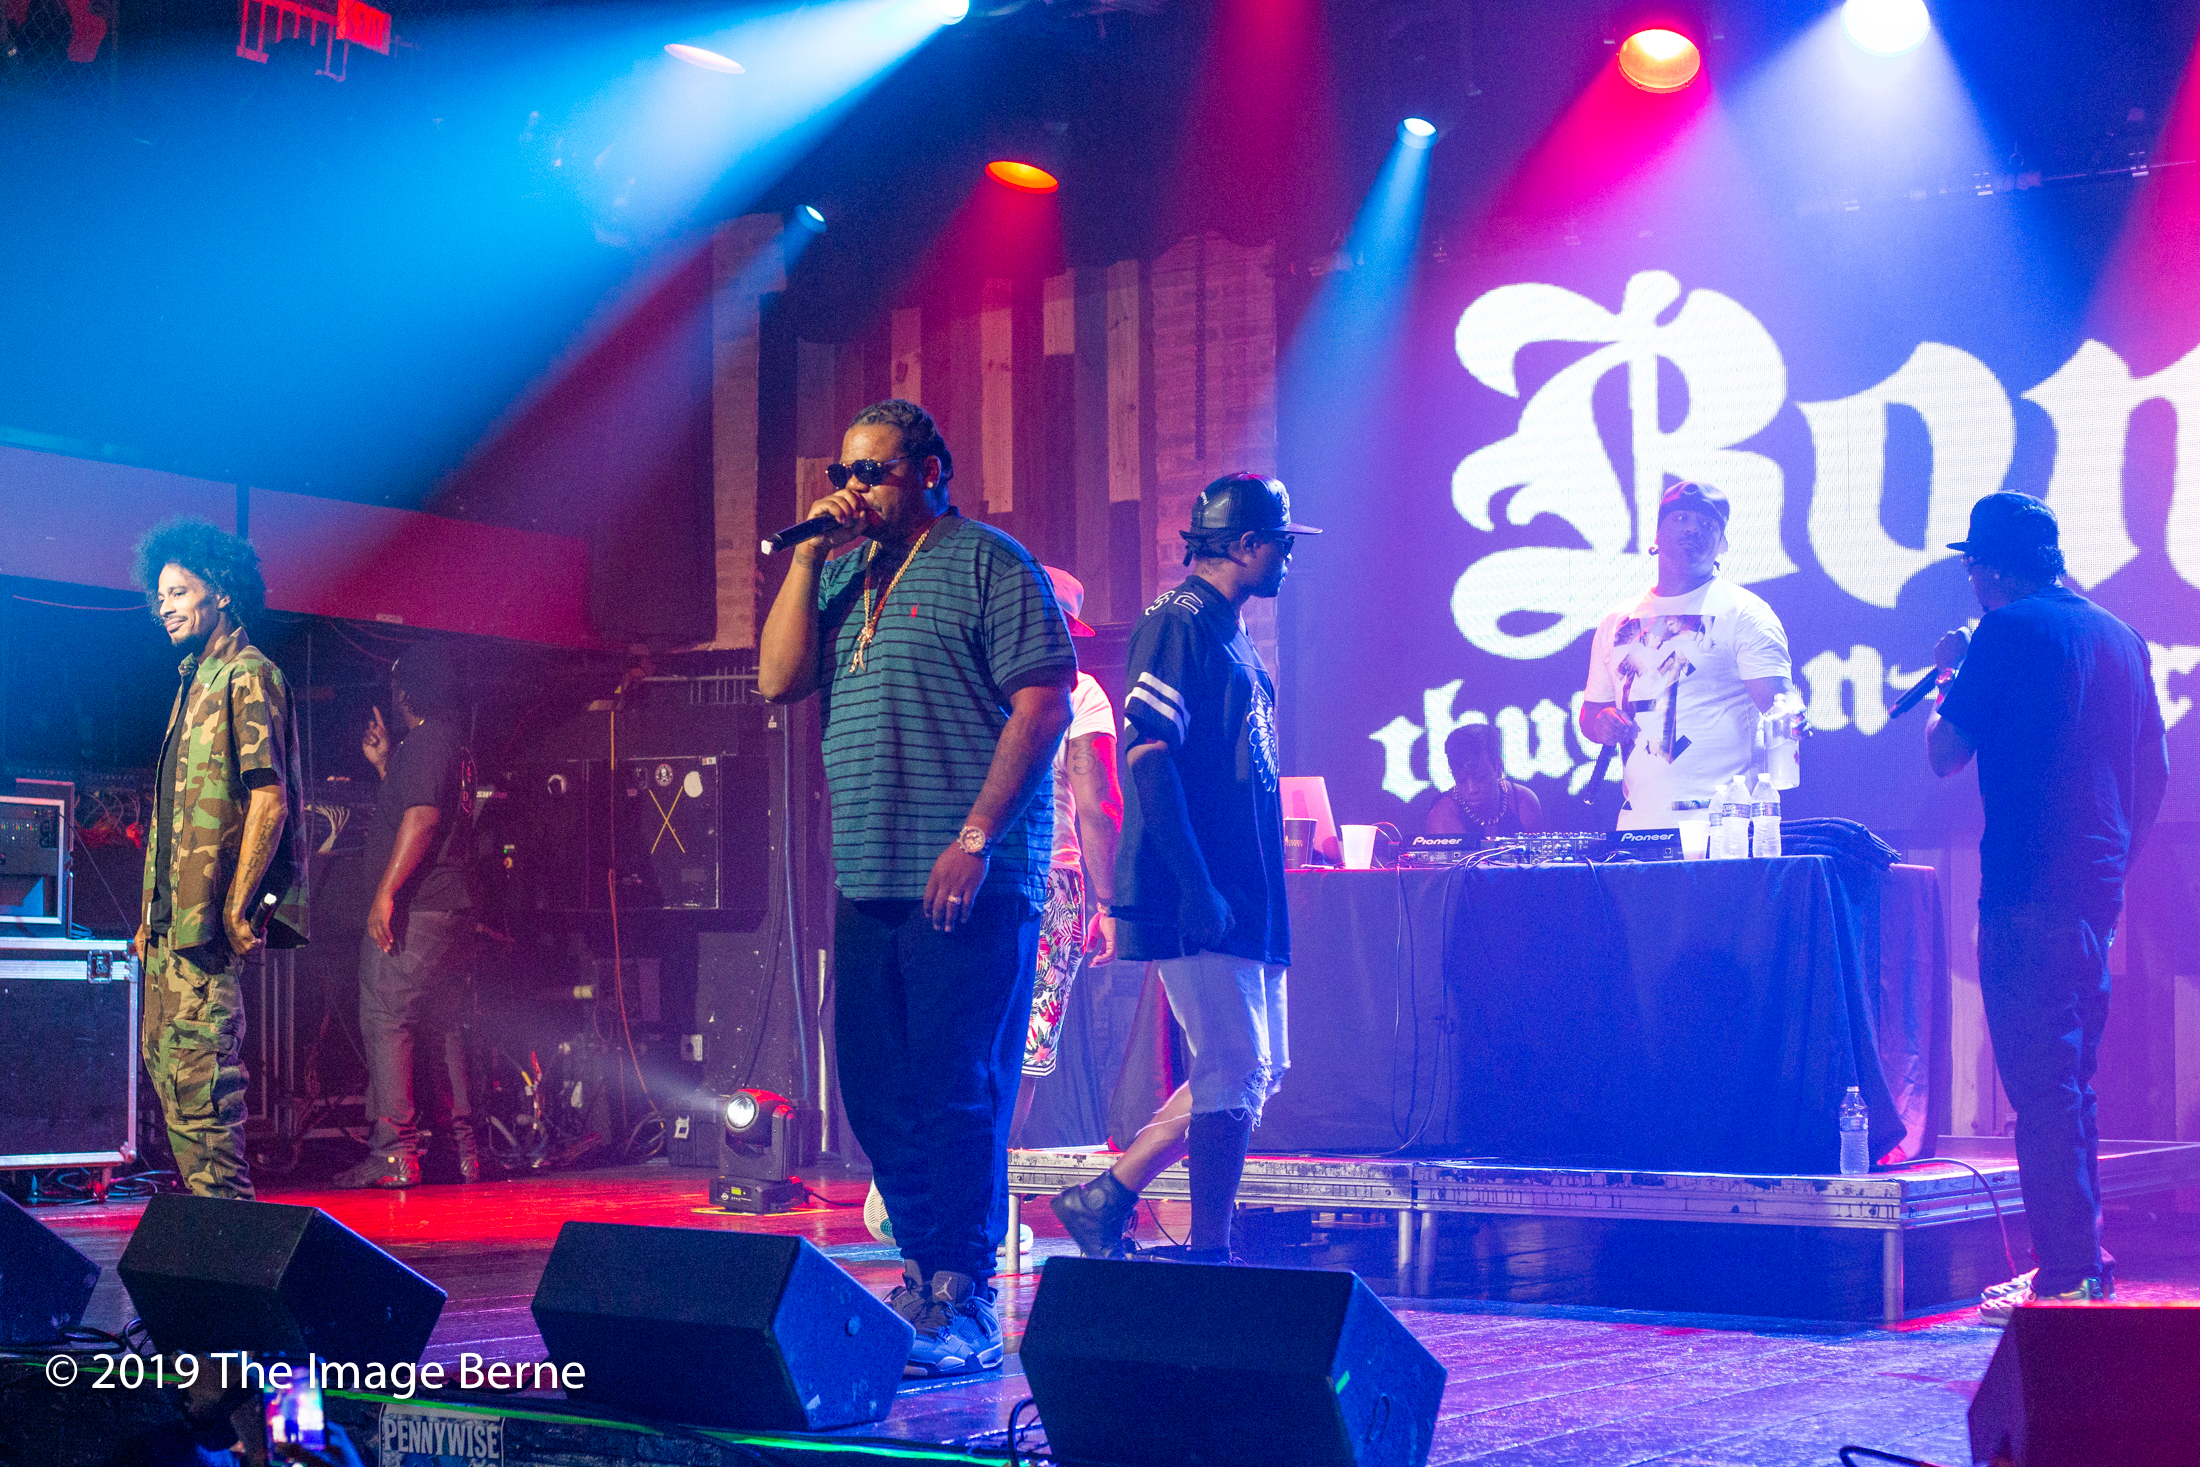 Krayzie Bone, Wish Bone, Flesh-N-Bone, Layzie Bone, and Bizzy Bone-016.jpg